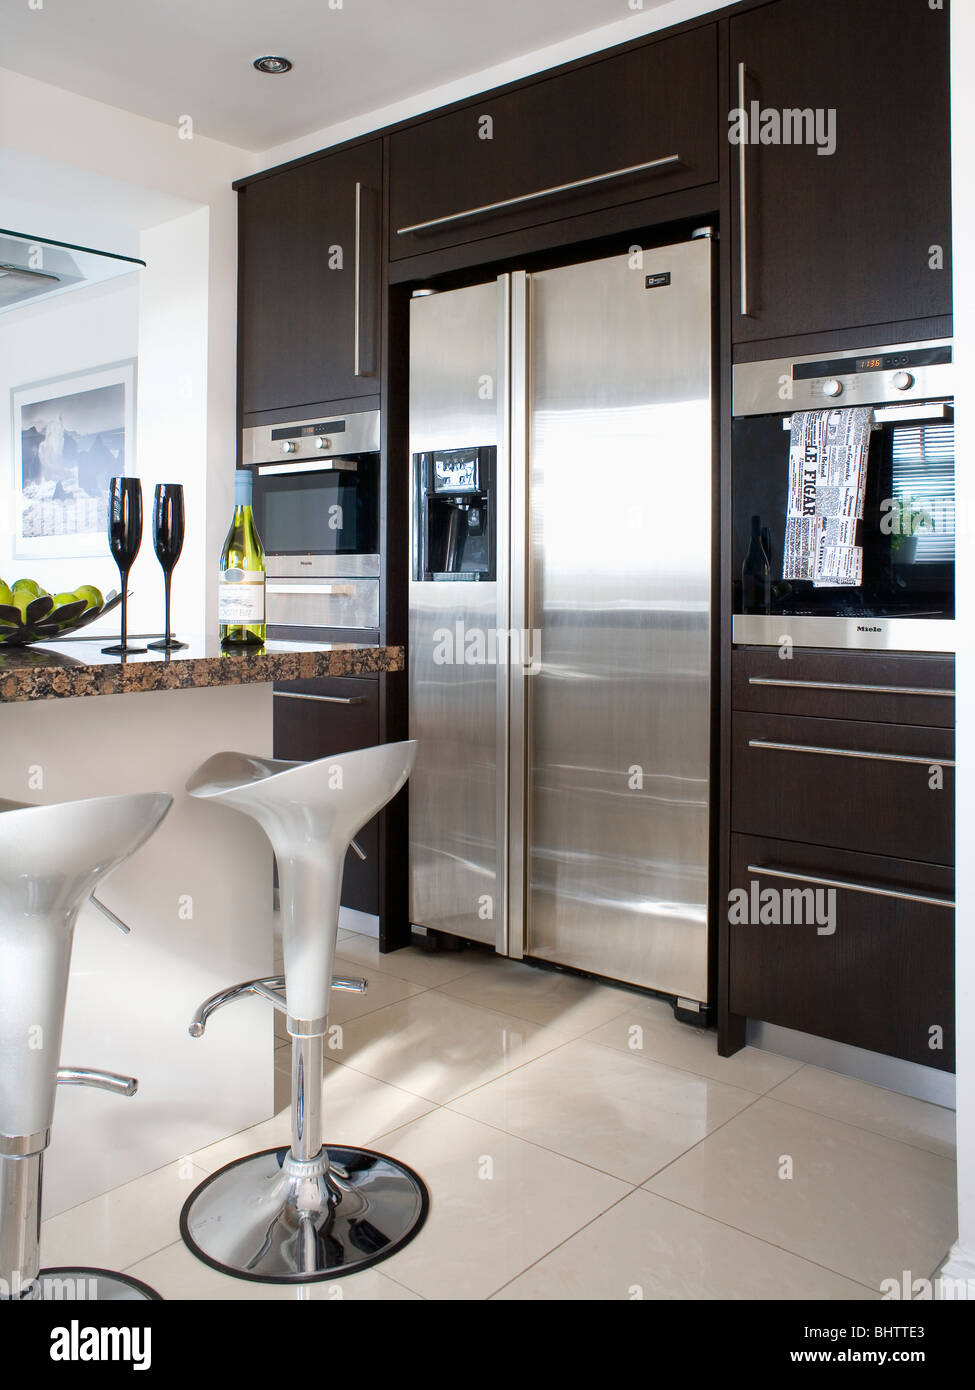 Steel Bombo Stools In Modern Kitchen With Large American Style Stainless  Steel Fridge Freezer In Tall Black Fitted Unit